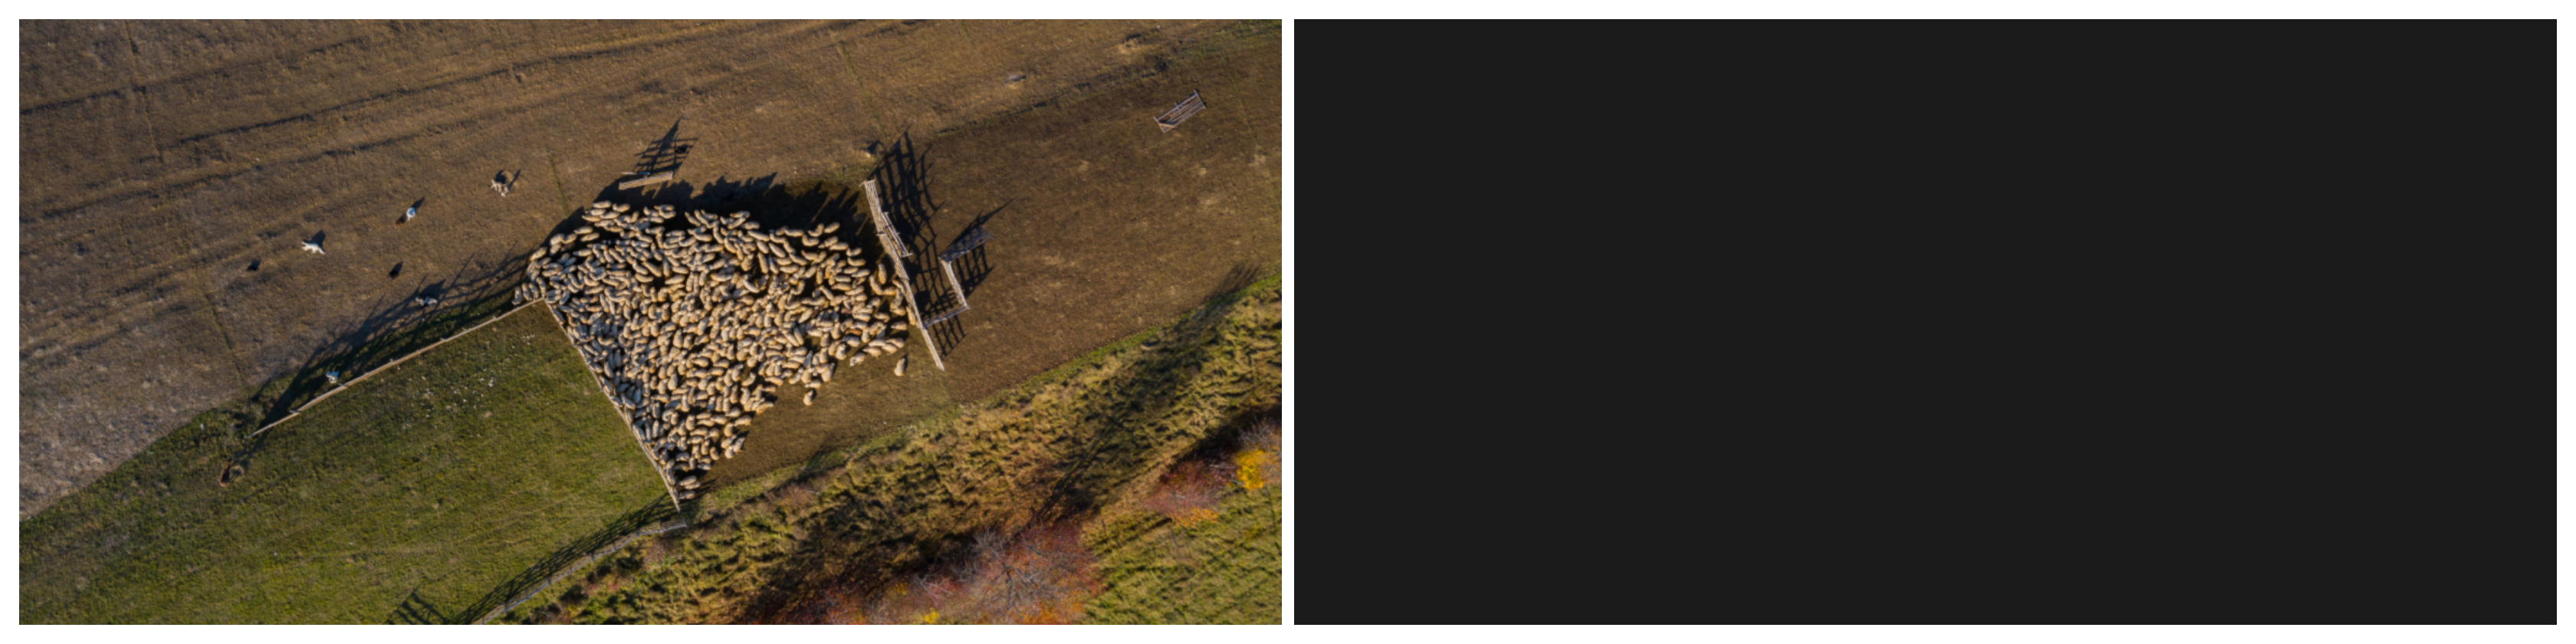 Fig. 1: The image before any training areas are added: What humans see (left) vs what the AI model sees (right).